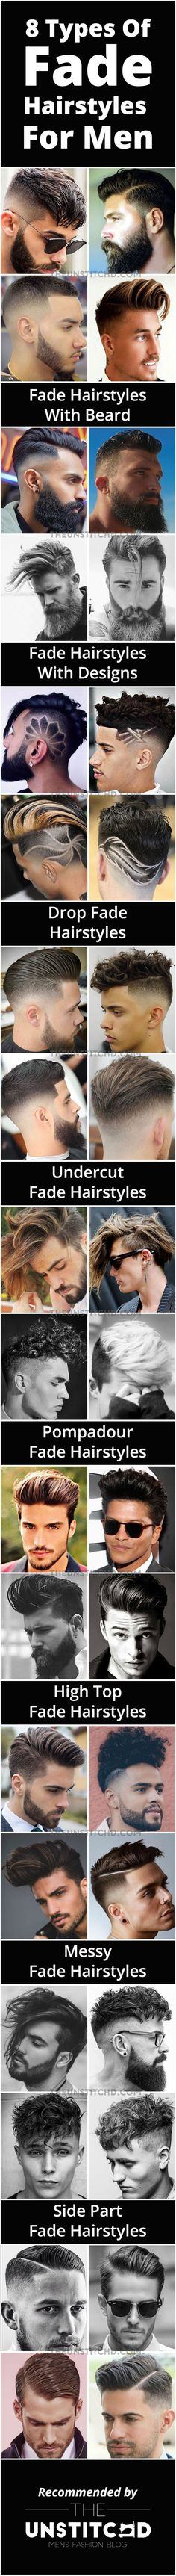 8 Types of Fade Hairstyles for Men. You will find latest fade haircuts for men aswell.